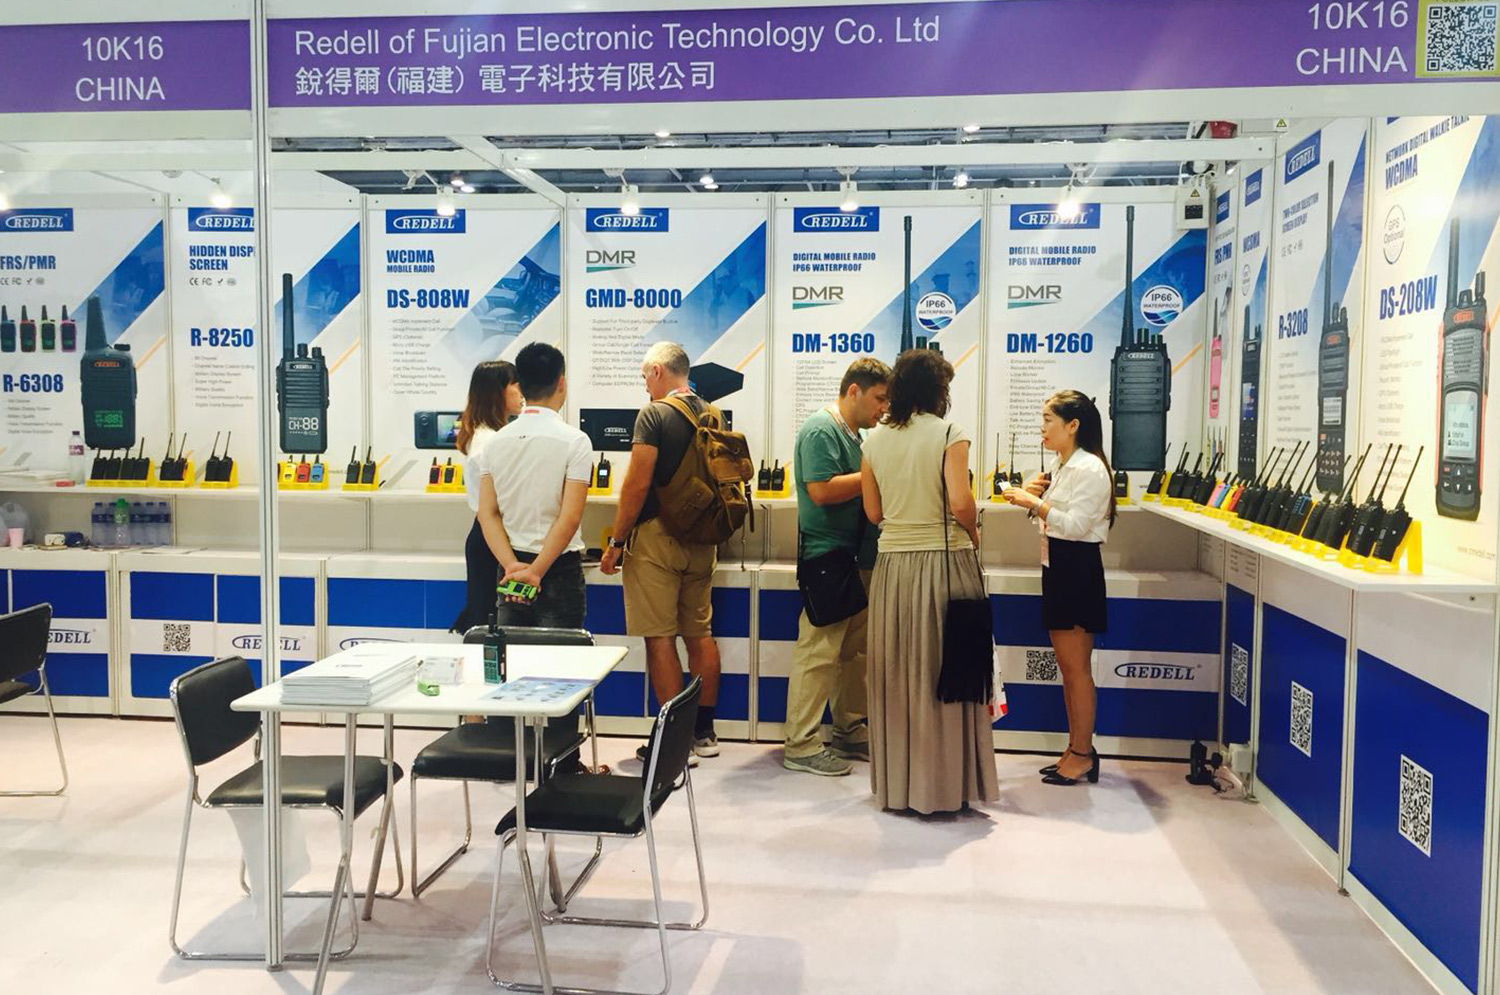 Hong Kong Autumn Global Sources Electronics Exhibition 2018 At the Asia World Expo